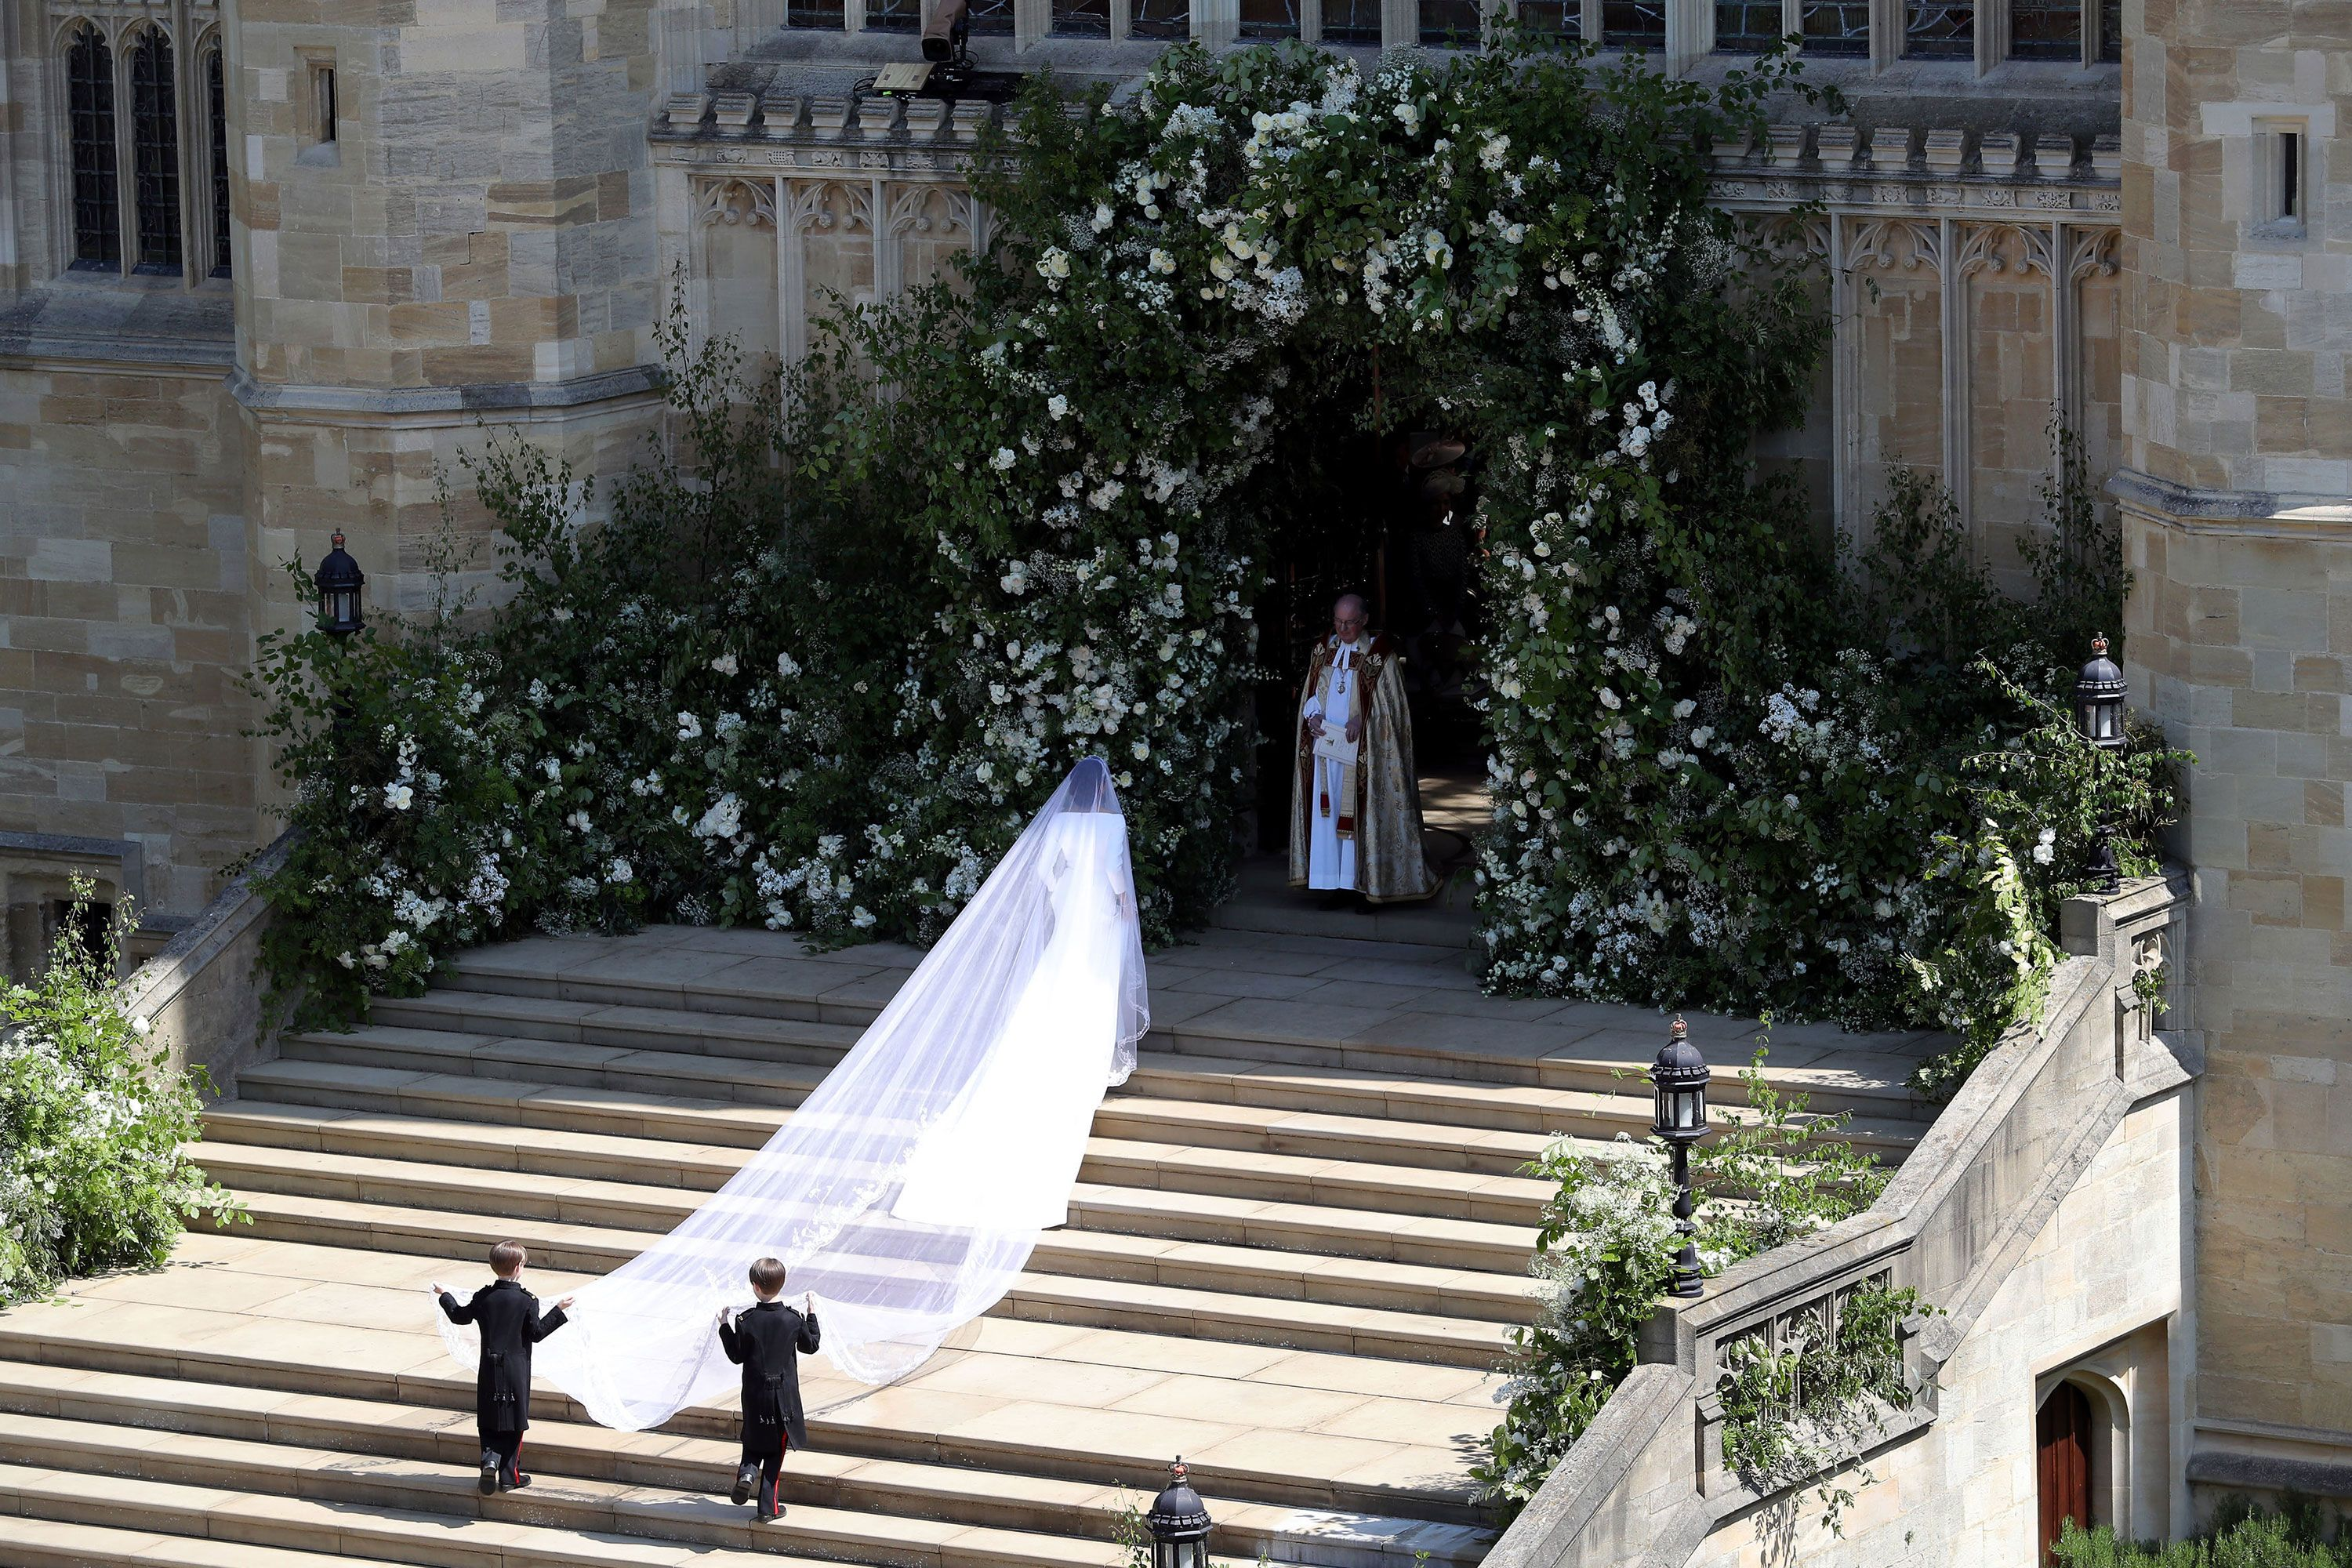 https://hips.hearstapps.com/hmg-prod.s3.amazonaws.com/images/meghan-markle-wedding-dress-givenchy-1526729861.jpg